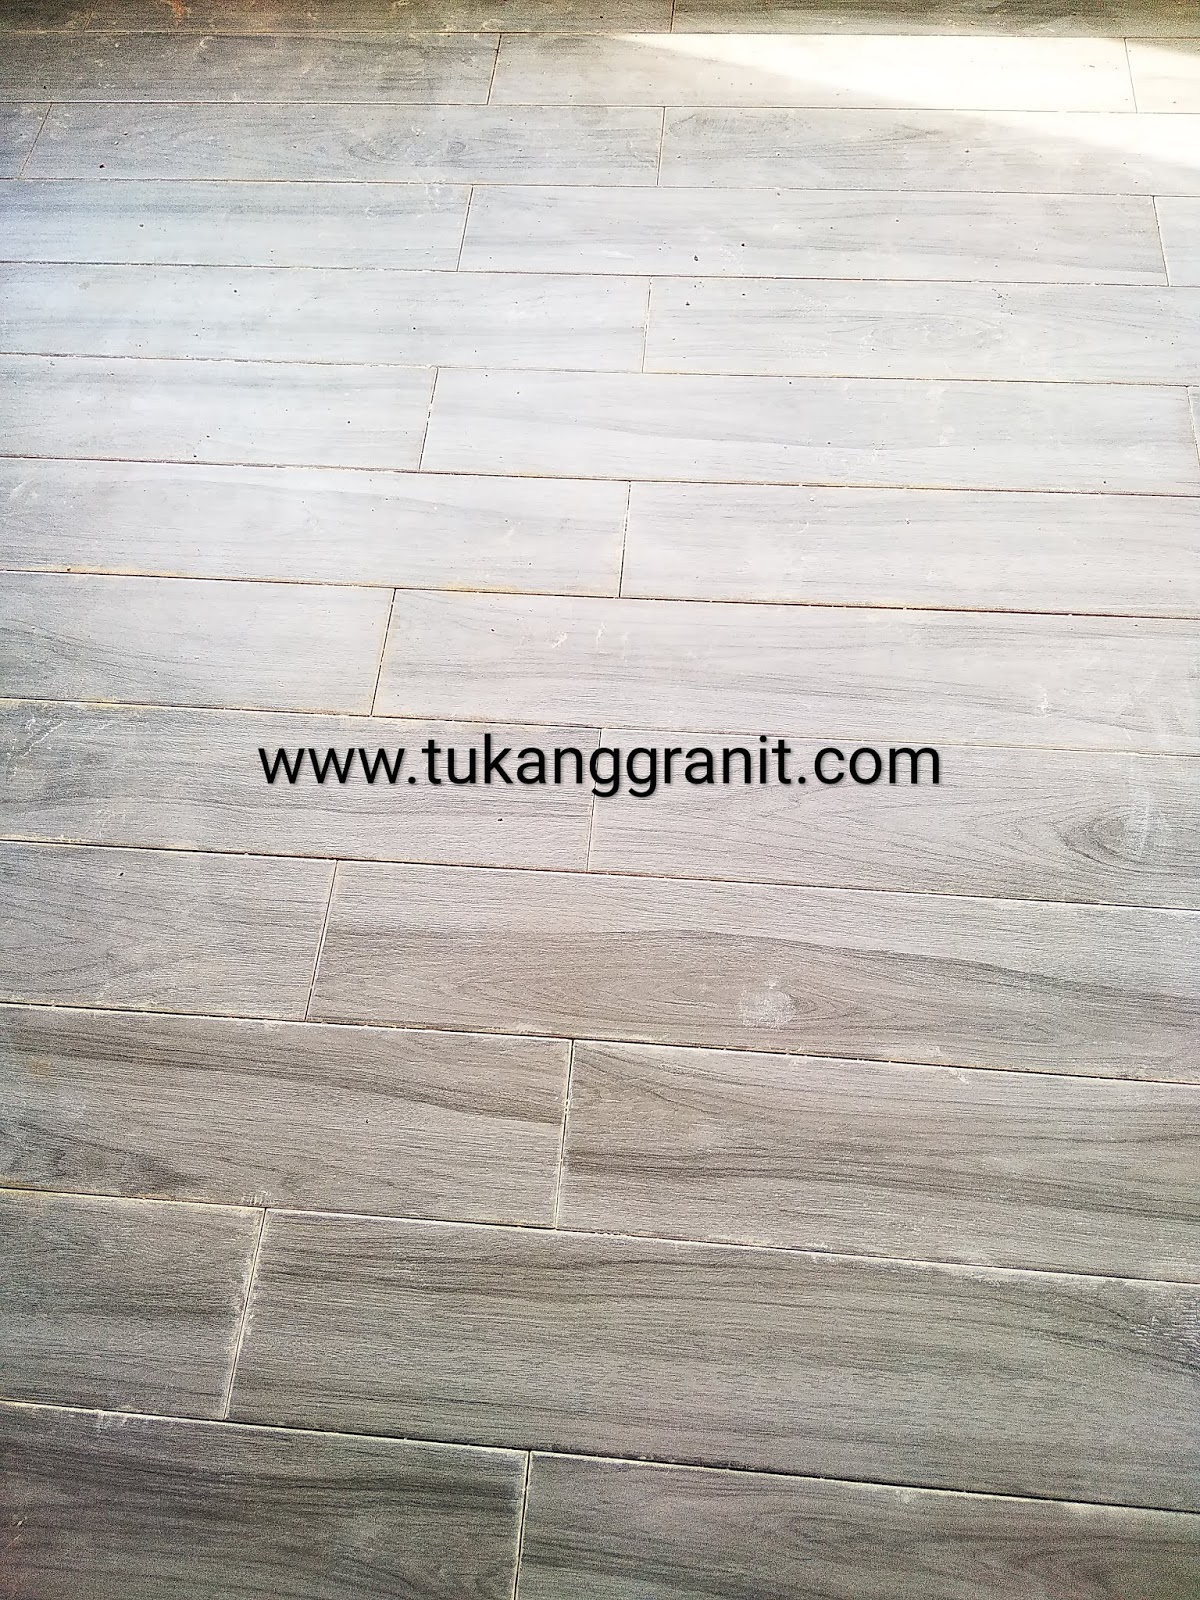 Review Granit Motif Kayu Merk Best Wood Ukuran 15 x 80 Cm